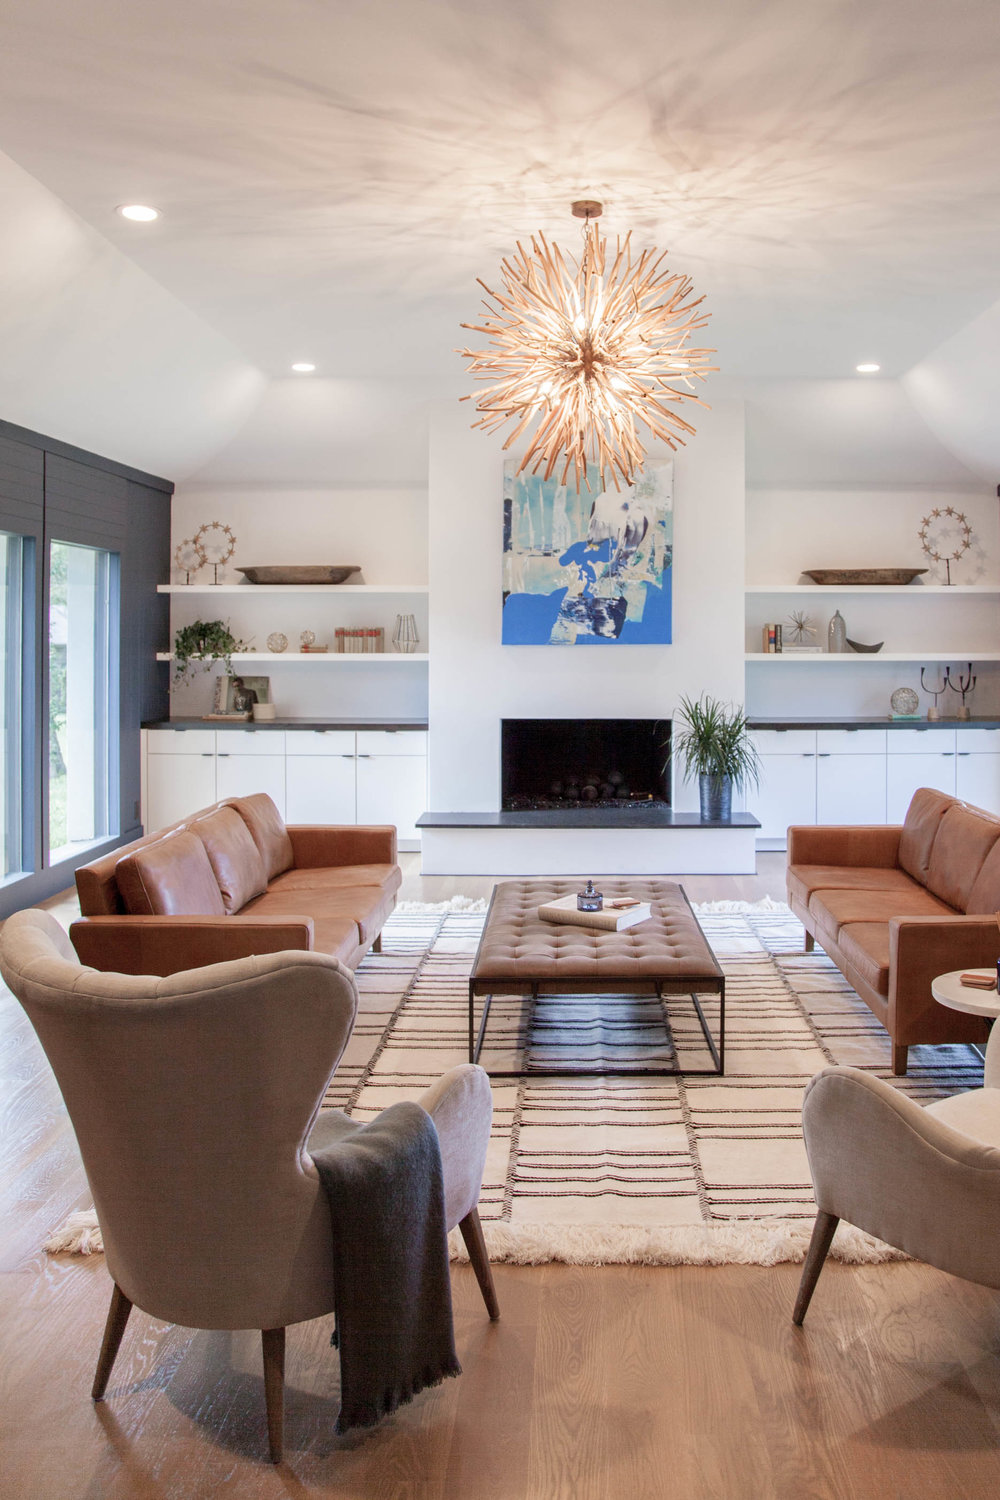 12th-Table-NASHVILLE-HOME-STAGING-Residential-Staging-INTERIOR DESIGN-Conley-House-Behind-the-Scenes-LadyAcres-CountryMusicLegend-TammyWynetteHome-Photograph #-72.jpg